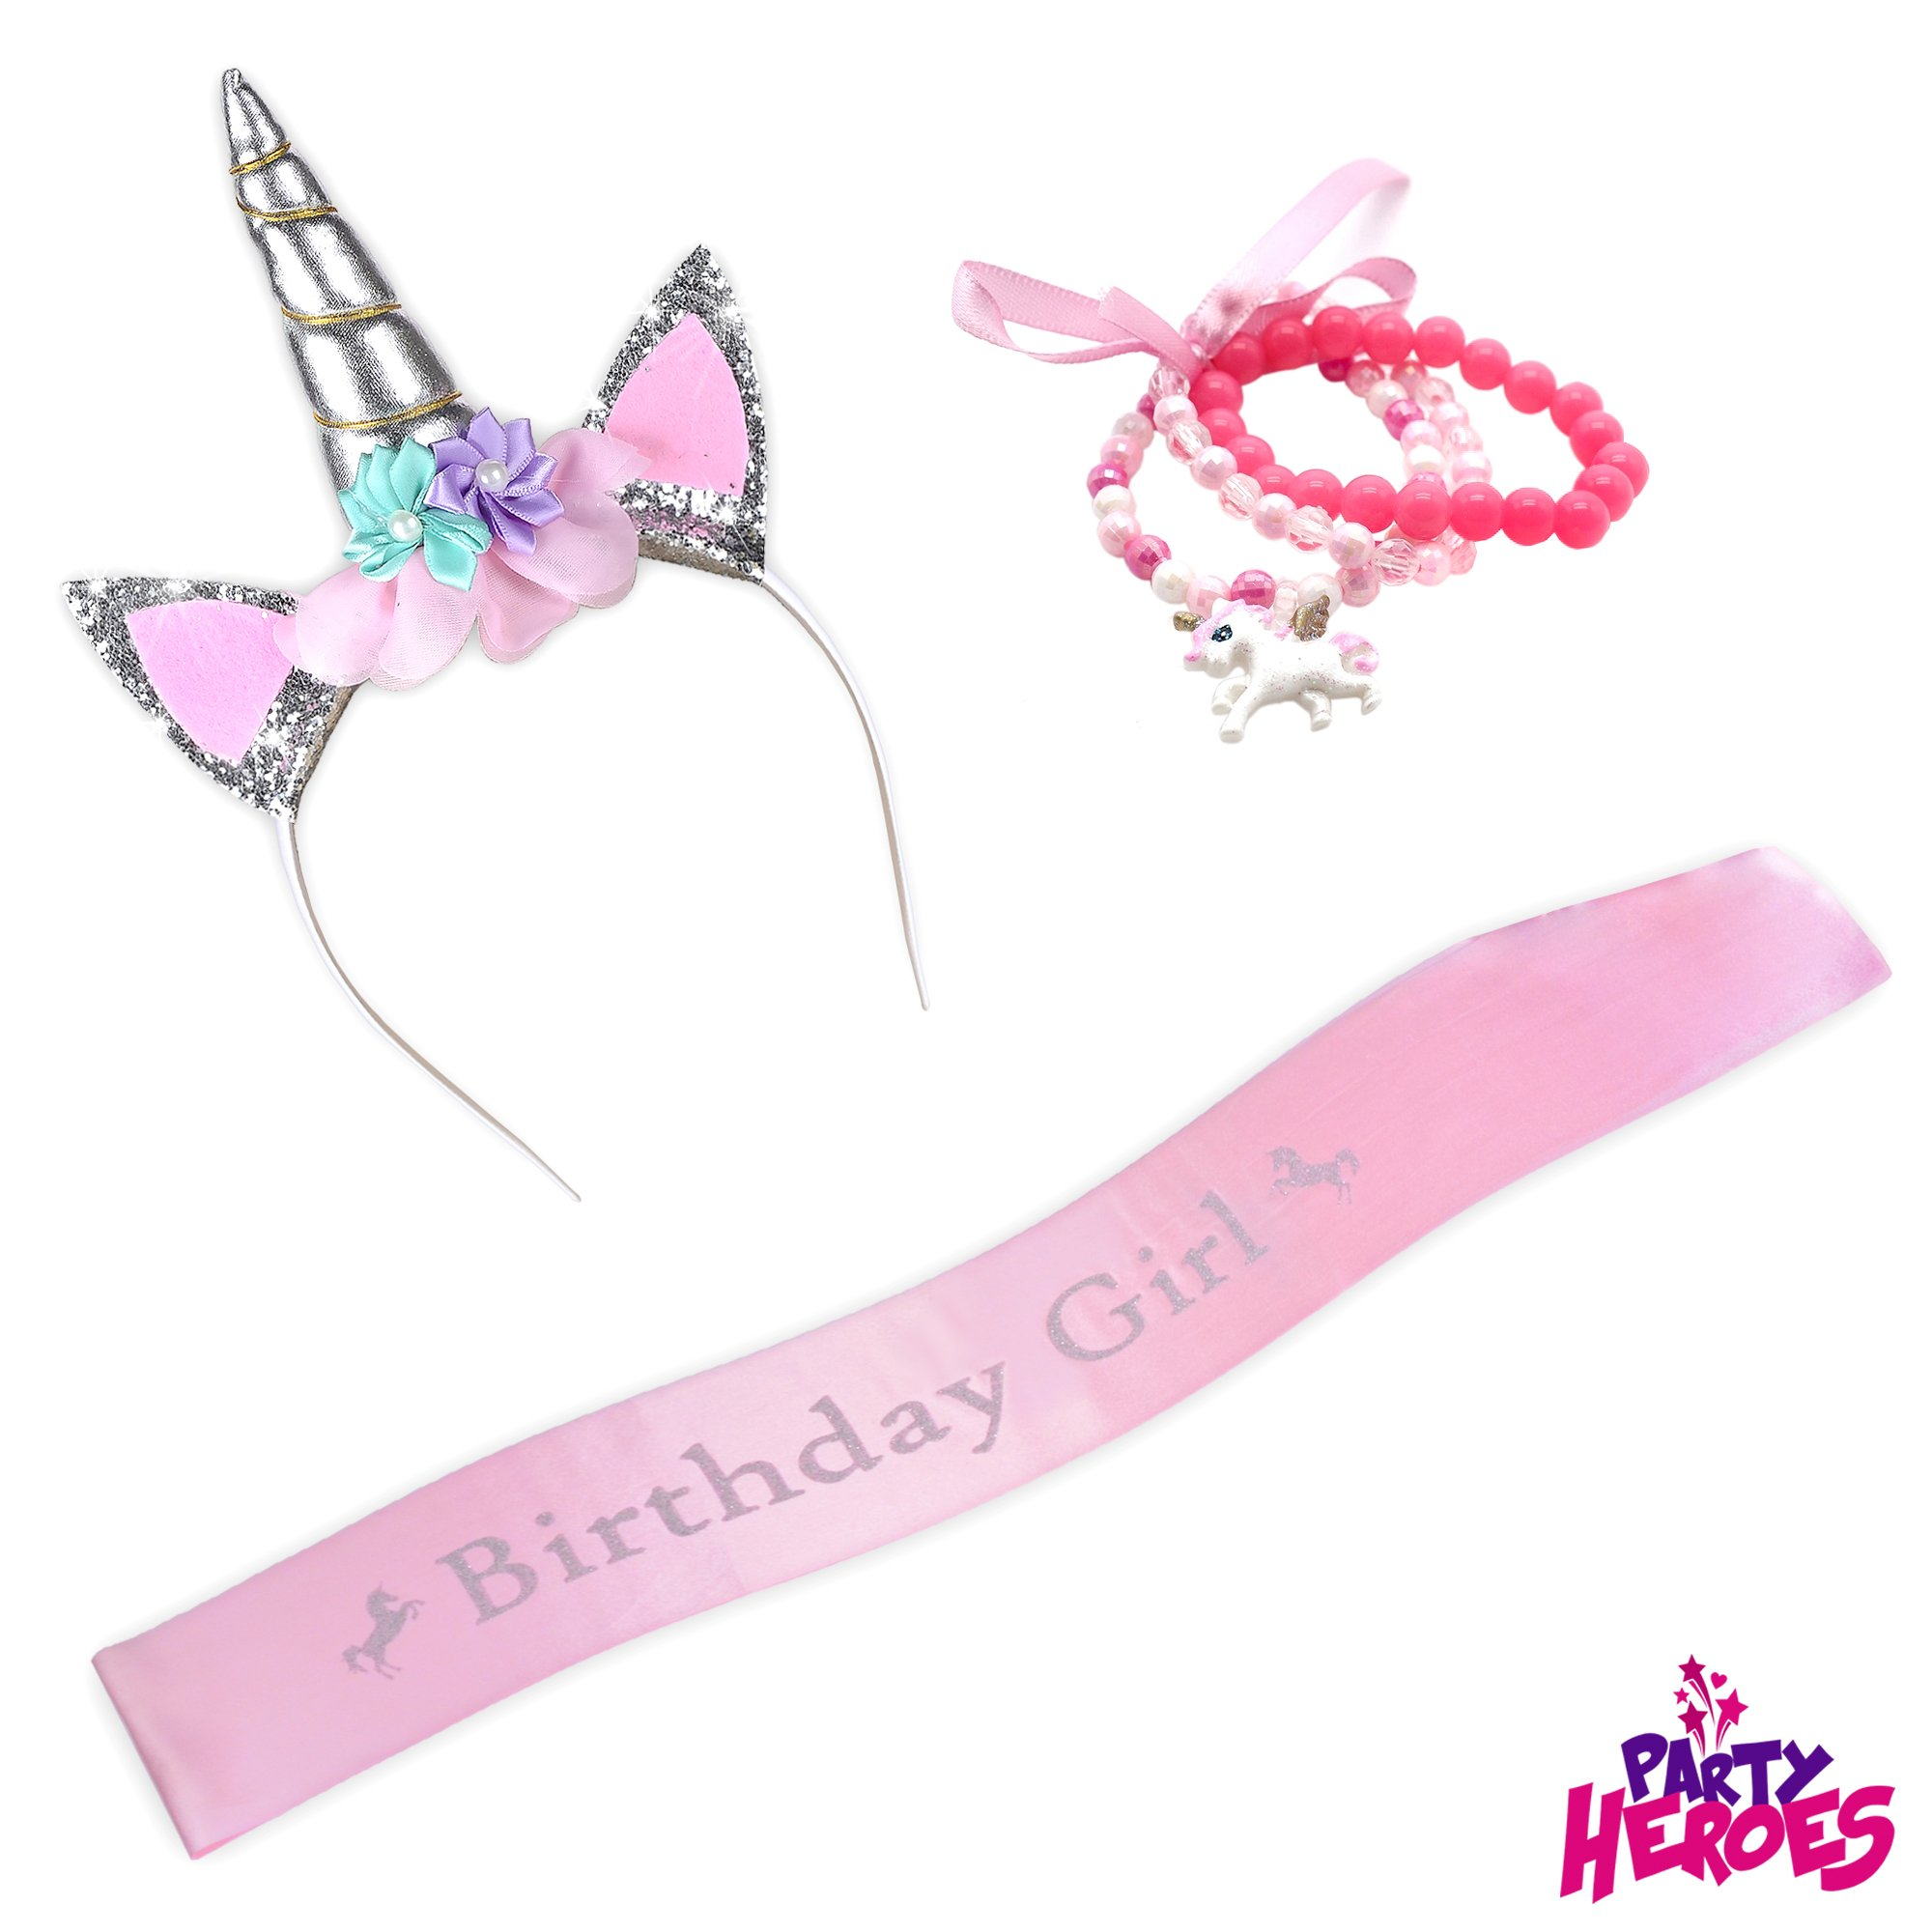 Unicorn Party Supplies Birthday Headband Set for Girls - w/Silver Glitter Headband and Pink Satin Birthday Girl's Sash - BONUS Pink Unicorn Bracelet - PERFECT Party Favors and Gifts - By Party Heroes